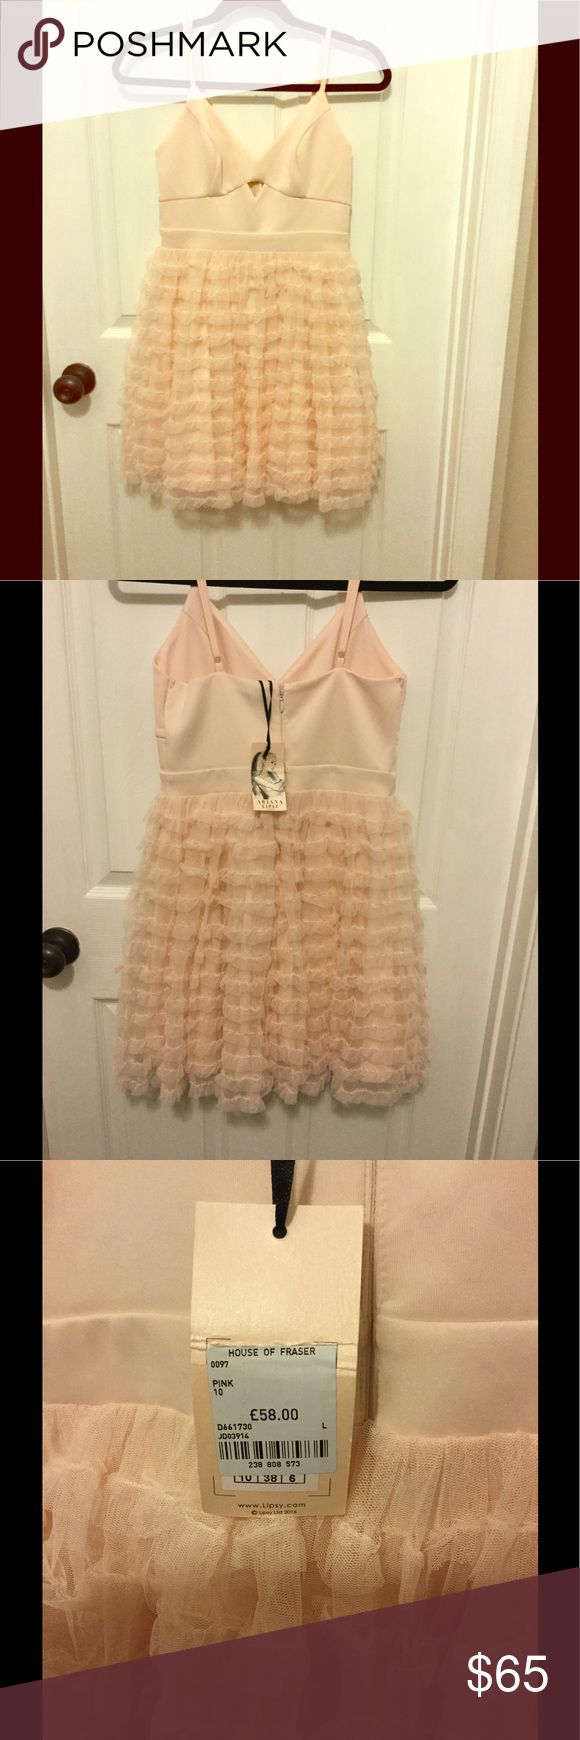 Ariana Grande for Lipsy pink ruffle dress Sweet as sugar pink ruffle dress. Never worn, perfect condition. *Tag shows price in pounds, original price listing has been converted to USD. Ariana Grande Dresses Mini